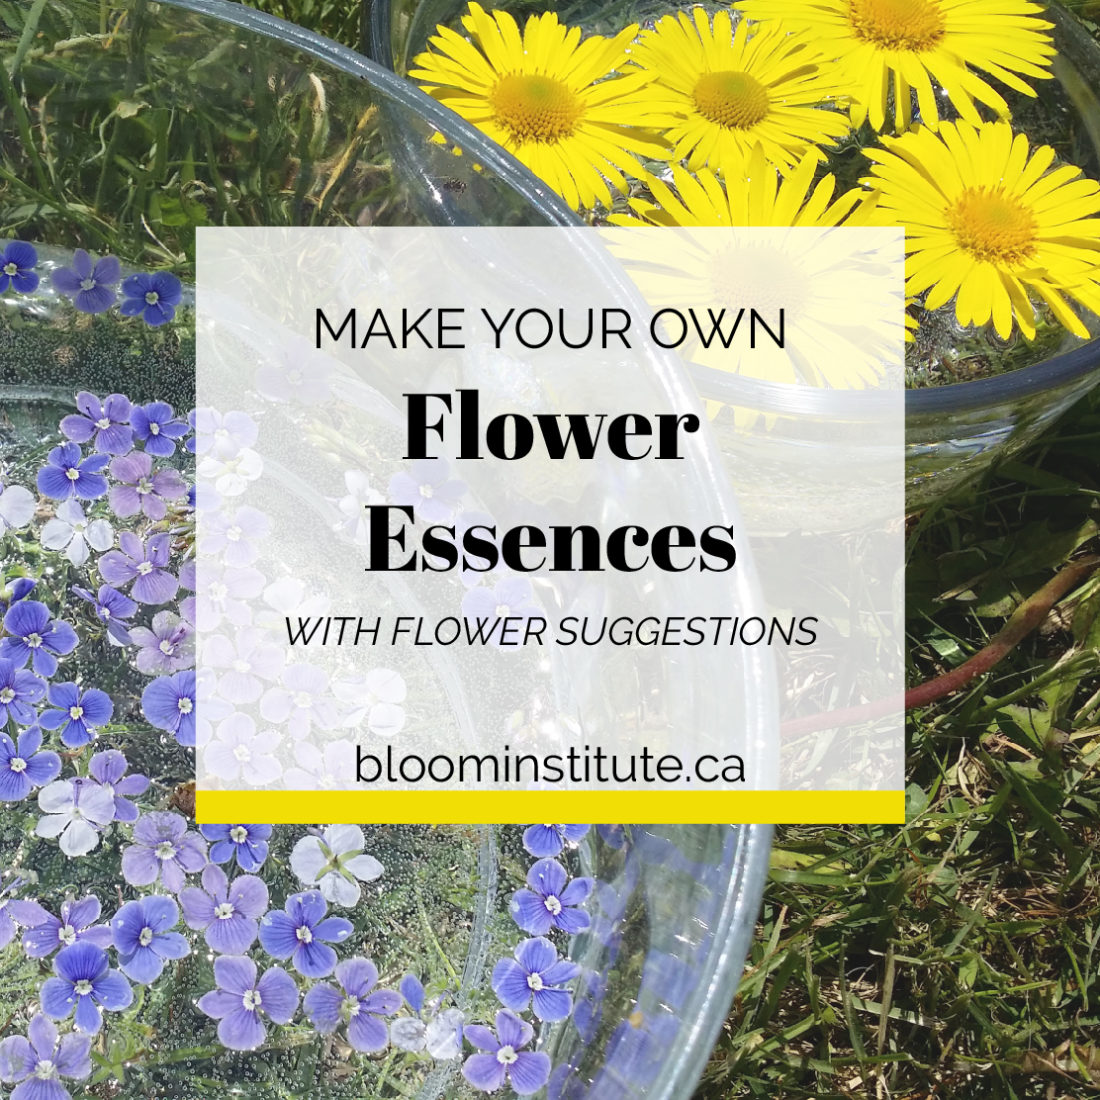 How To Make Your Own Flower Essences Bloom Institute